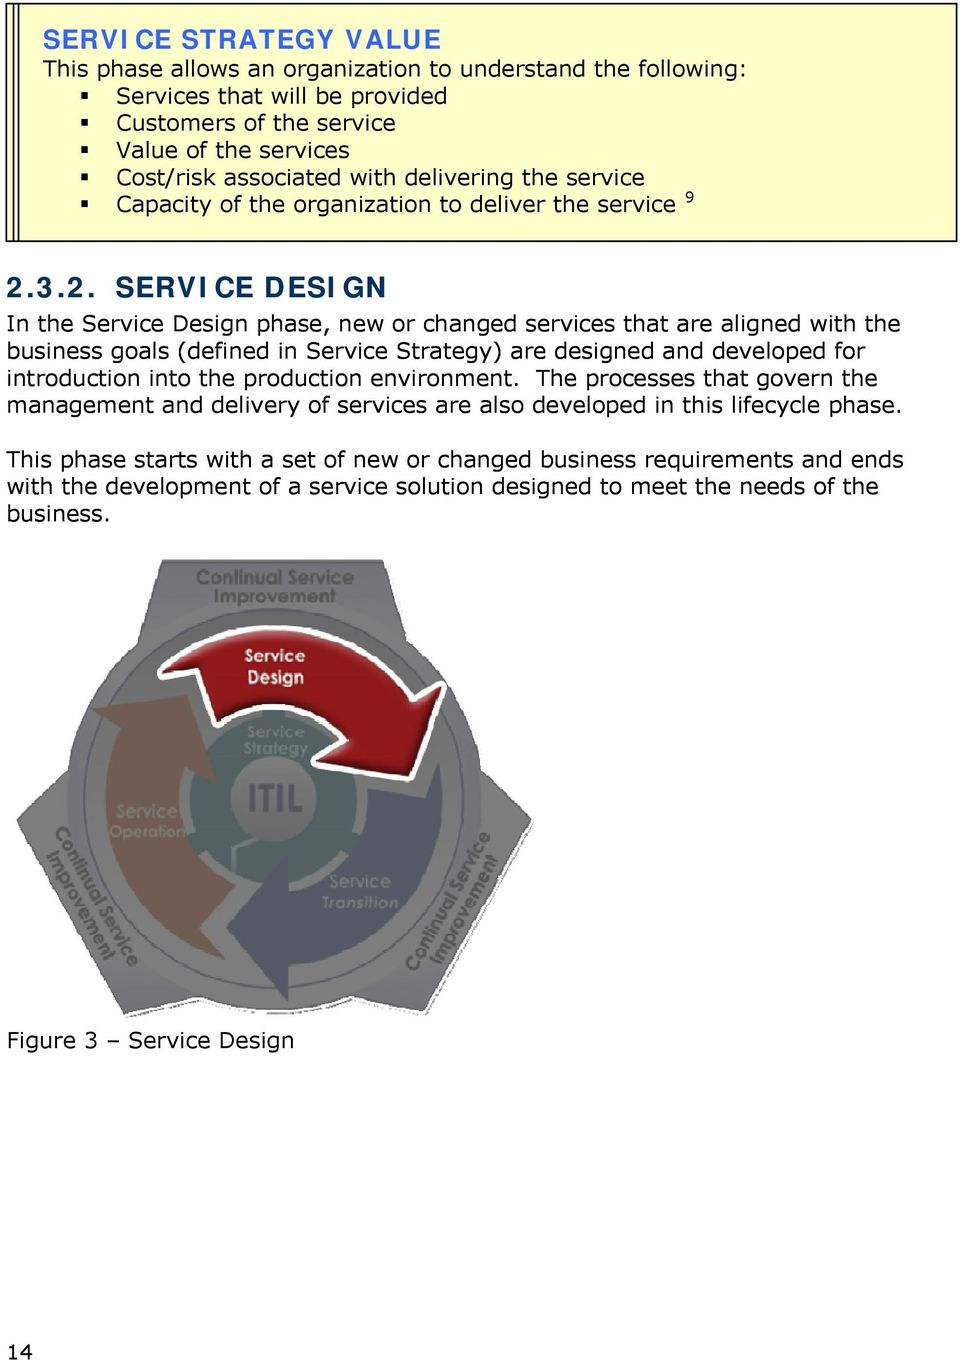 3.2. SERVICE DESIGN In the Service Design phase, new or changed services that are aligned with the business goals (defined in Service Strategy) are designed and developed for introduction into the